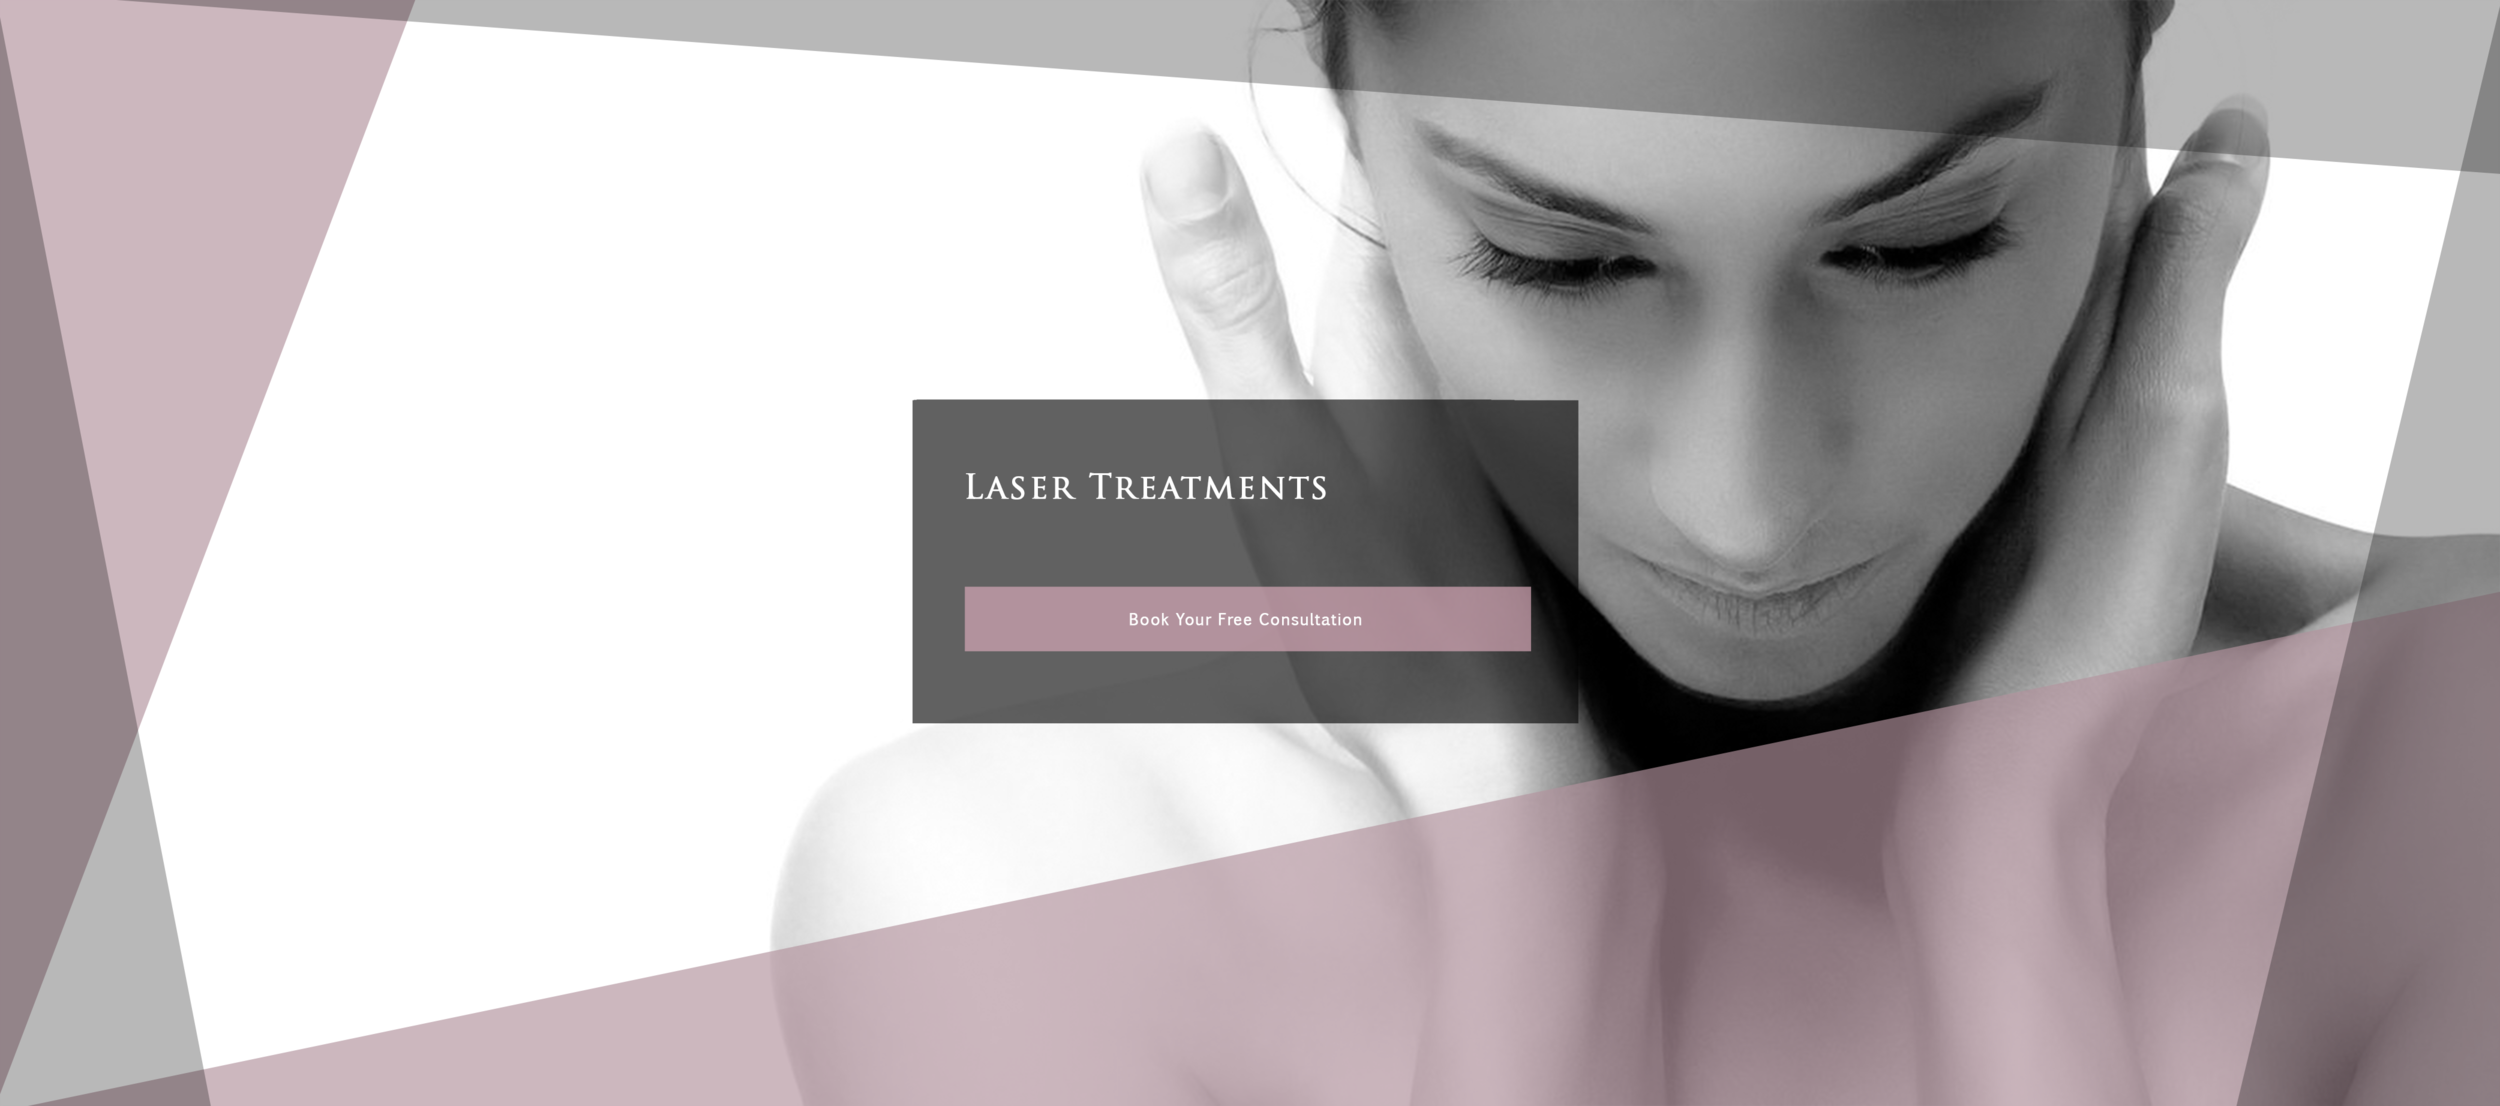 1 - Laser Treatments.png